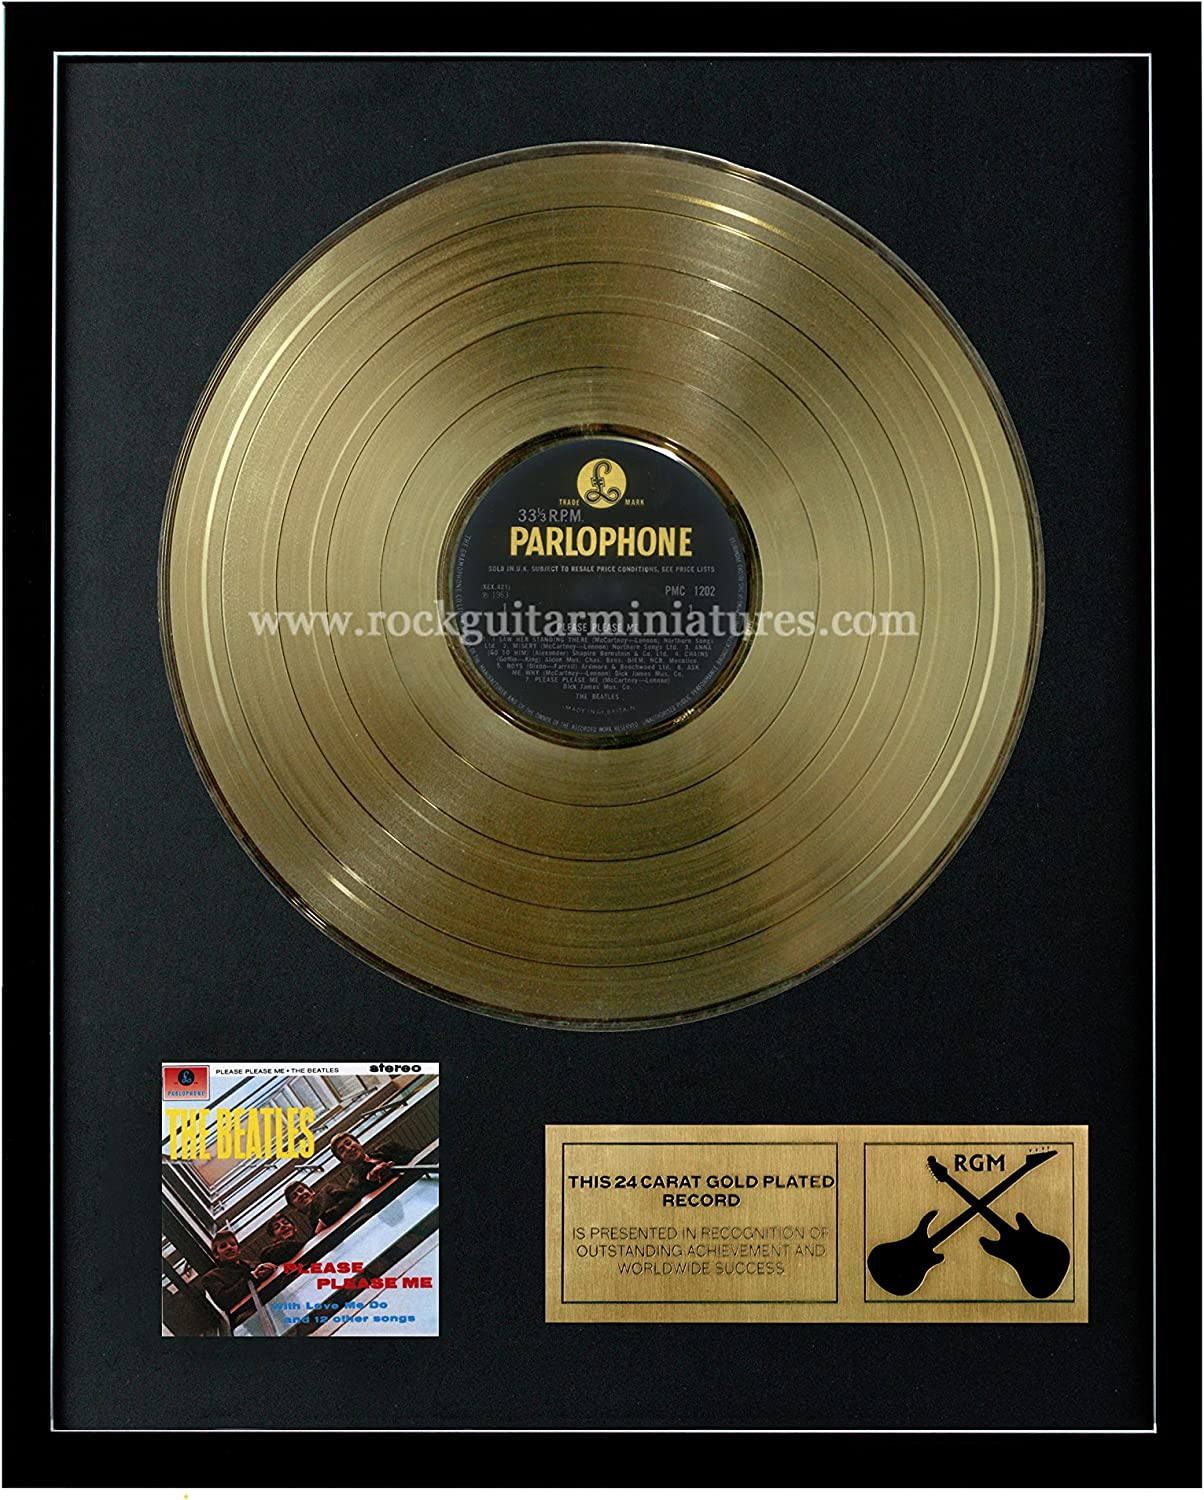 RGM1015 The Beatles Please Please Me gold Plated LP 12